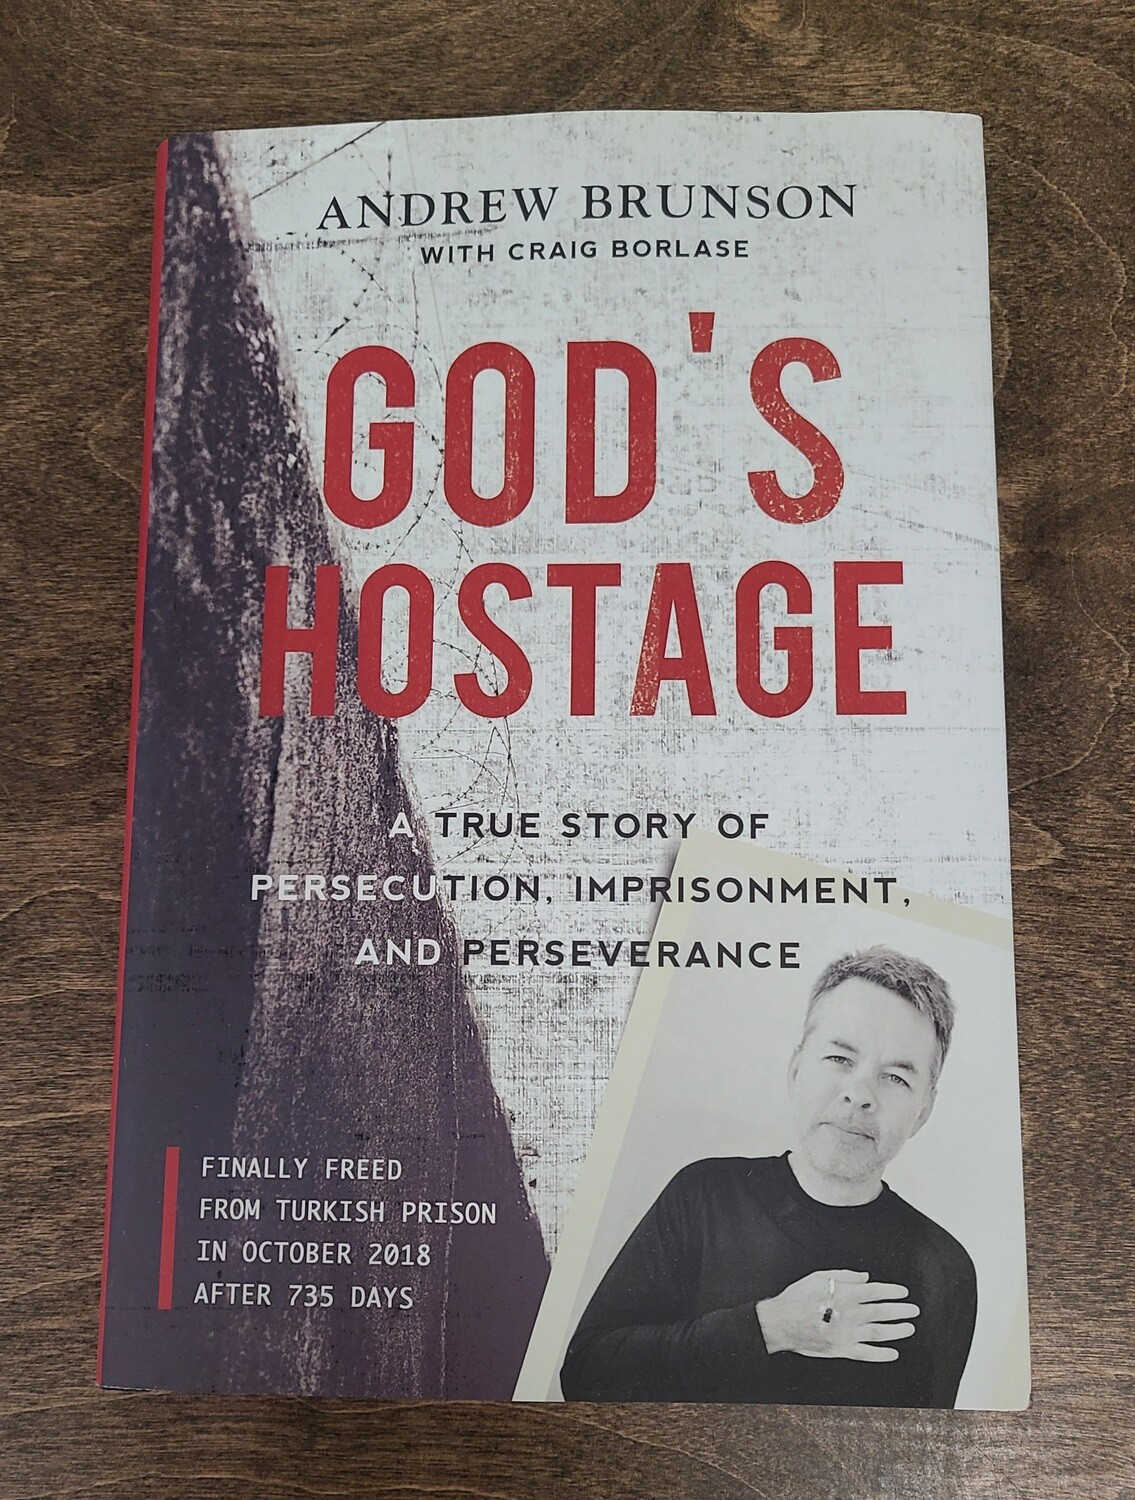 God's Hostage: A True Story of Persecution, Imprisonment, and Perseverance by Andrew Brunson with Craig Borlase